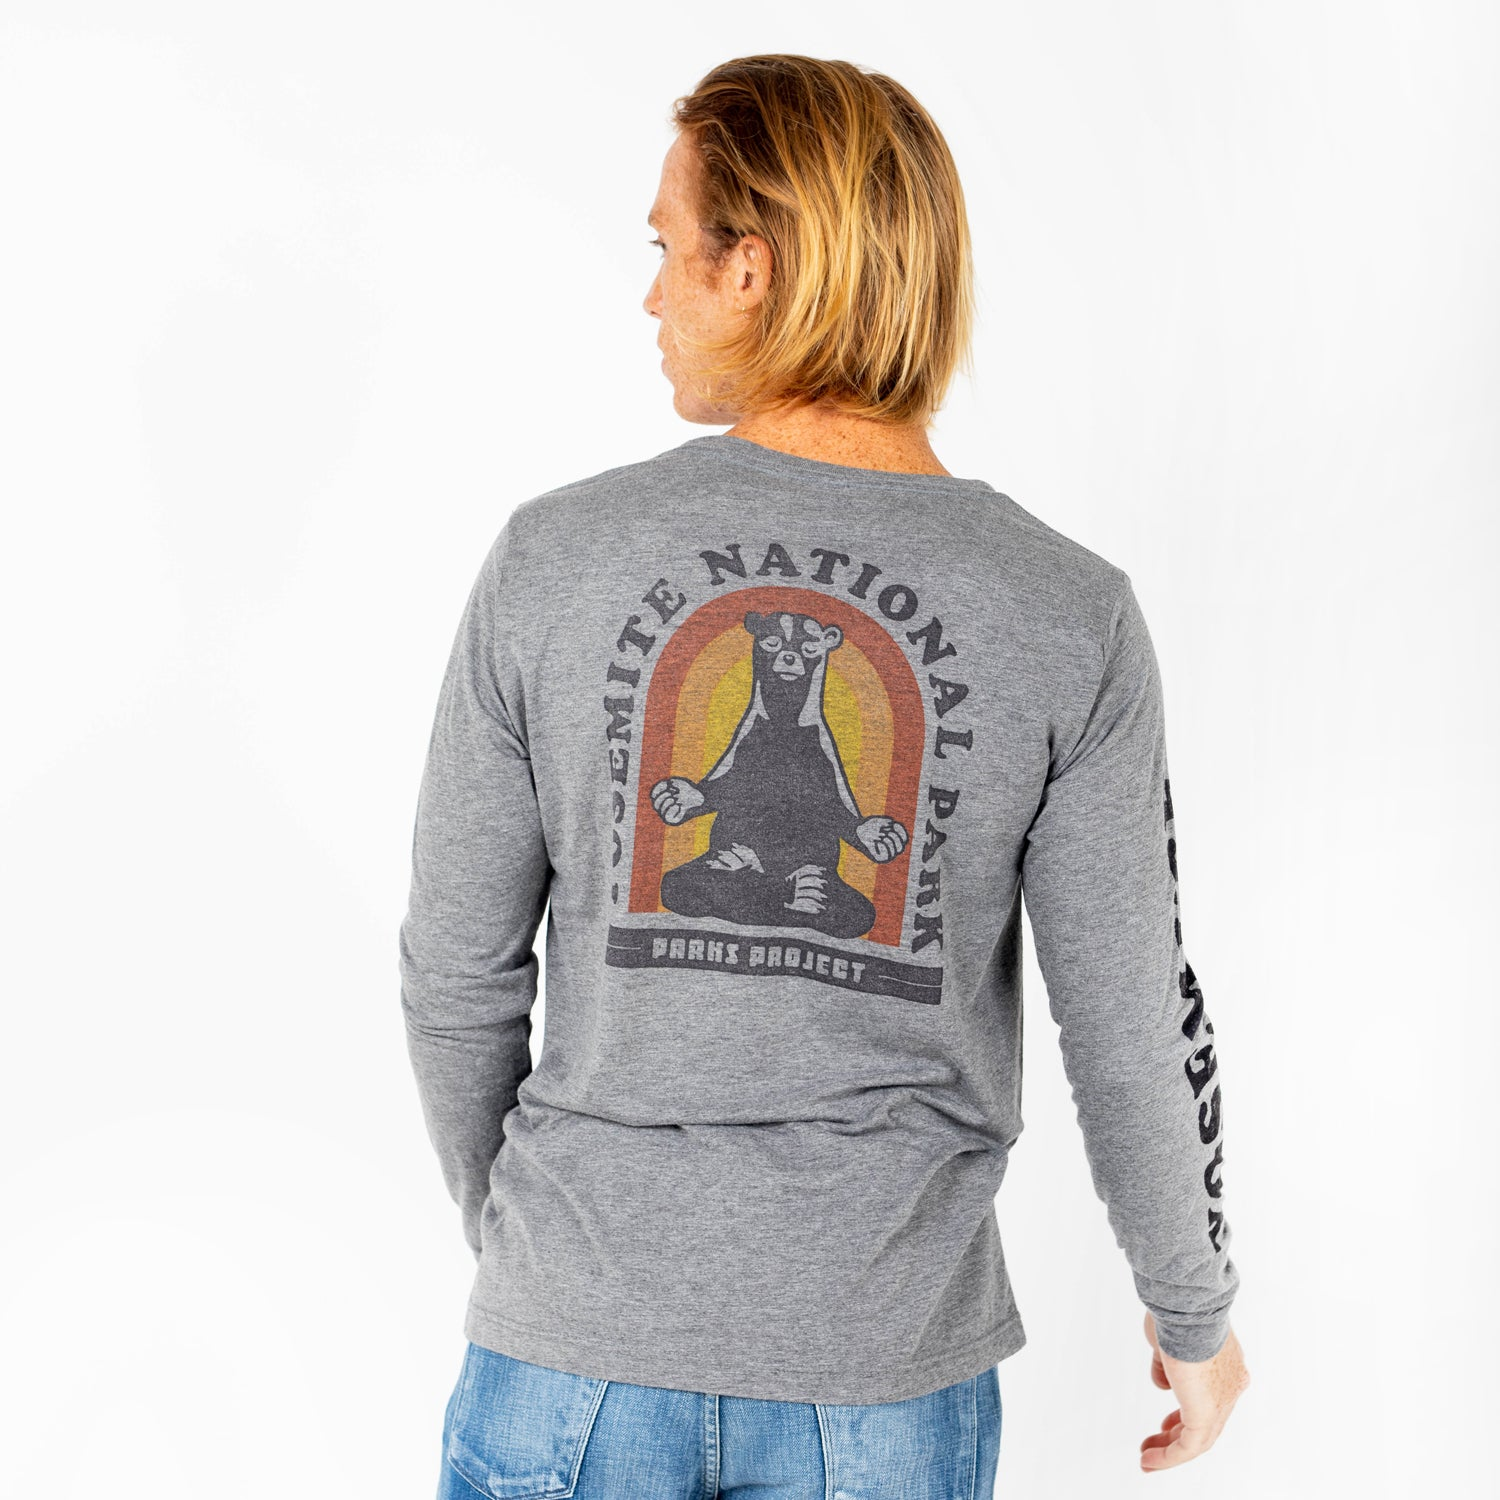 Yosemite Chill Out Long Sleeve Tee